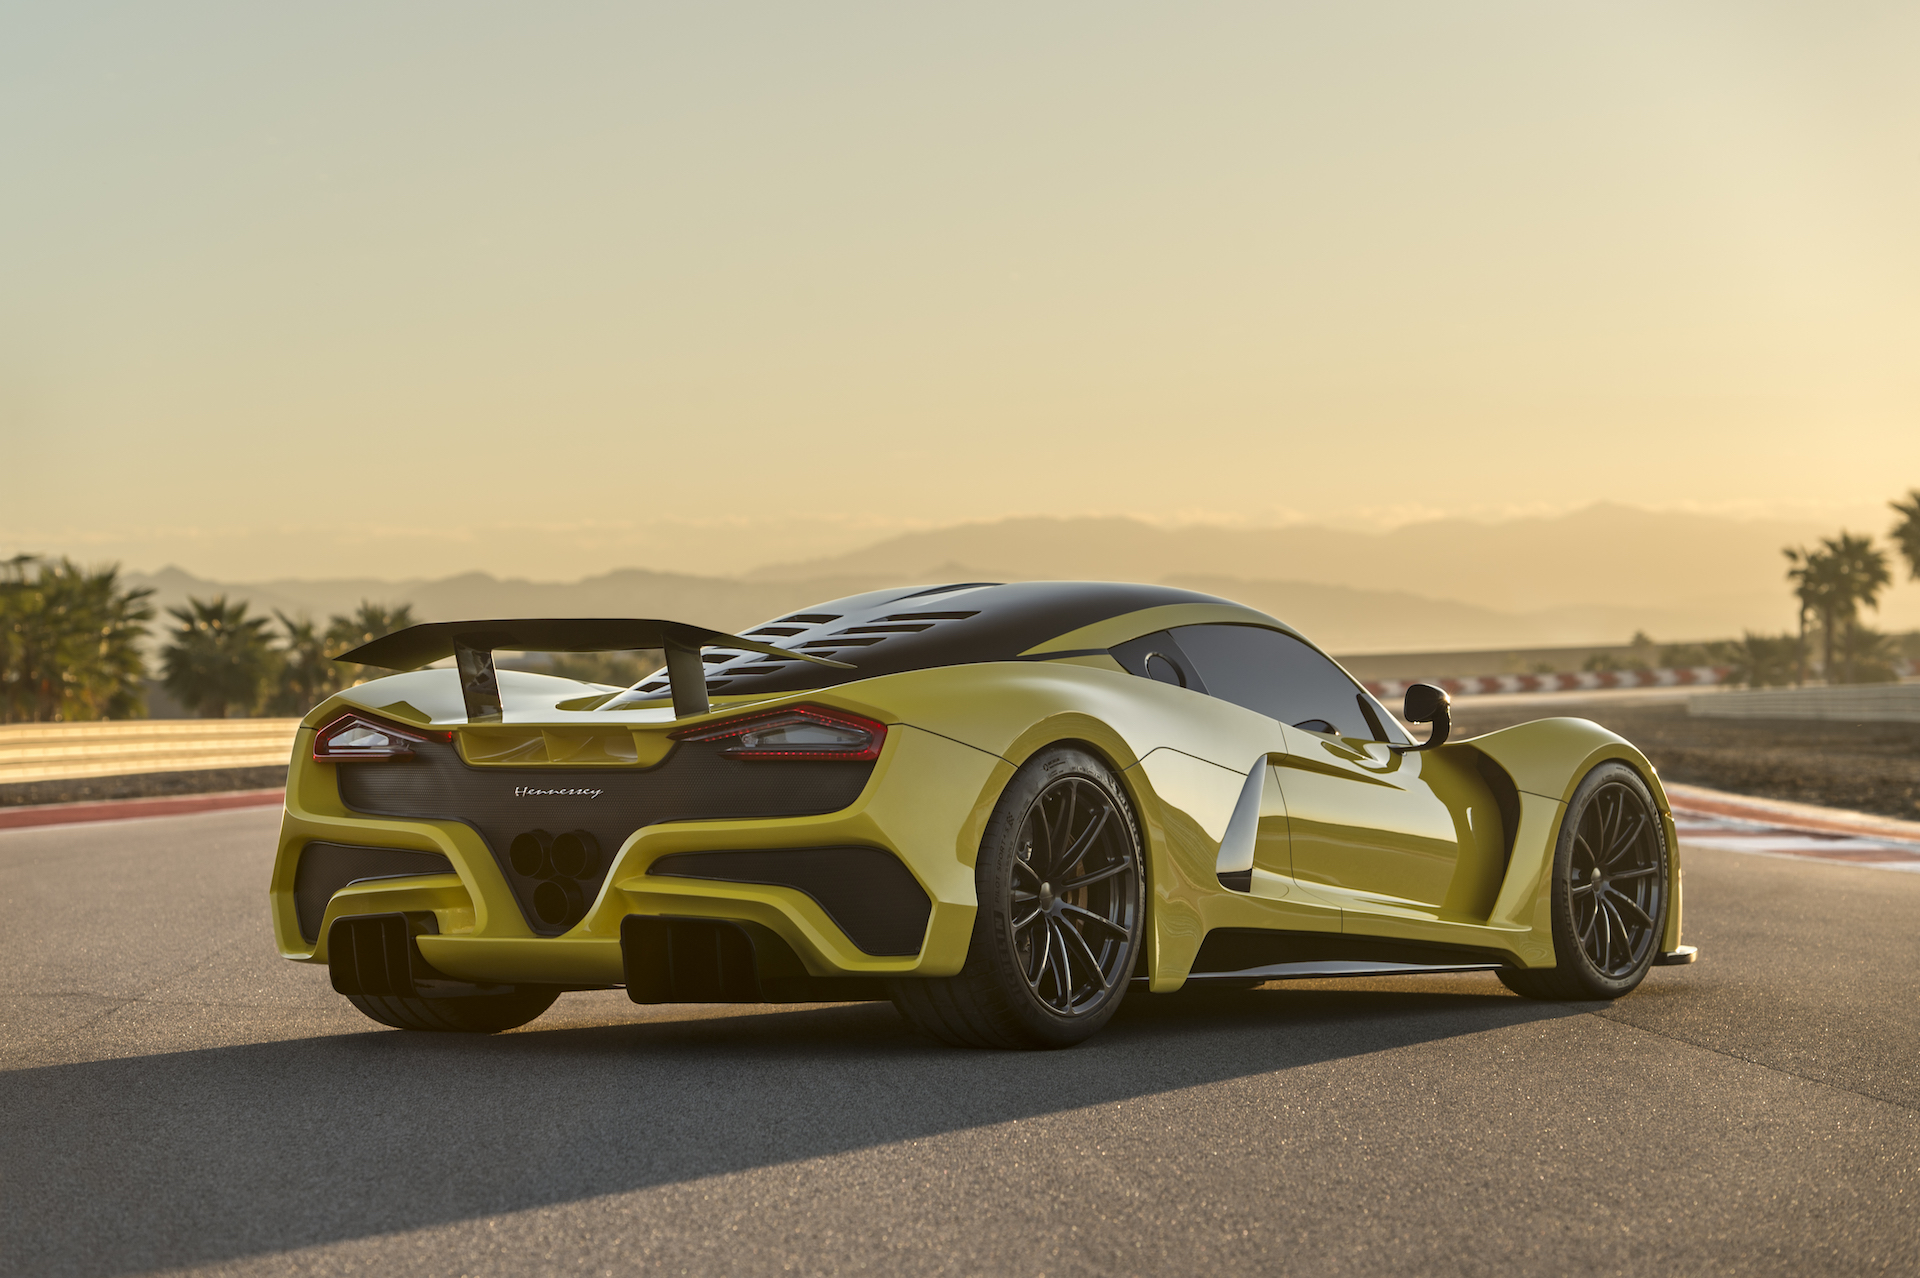 hennessey venom f5, bmw x4 spy video, mercedes g550 4x4 squared: car